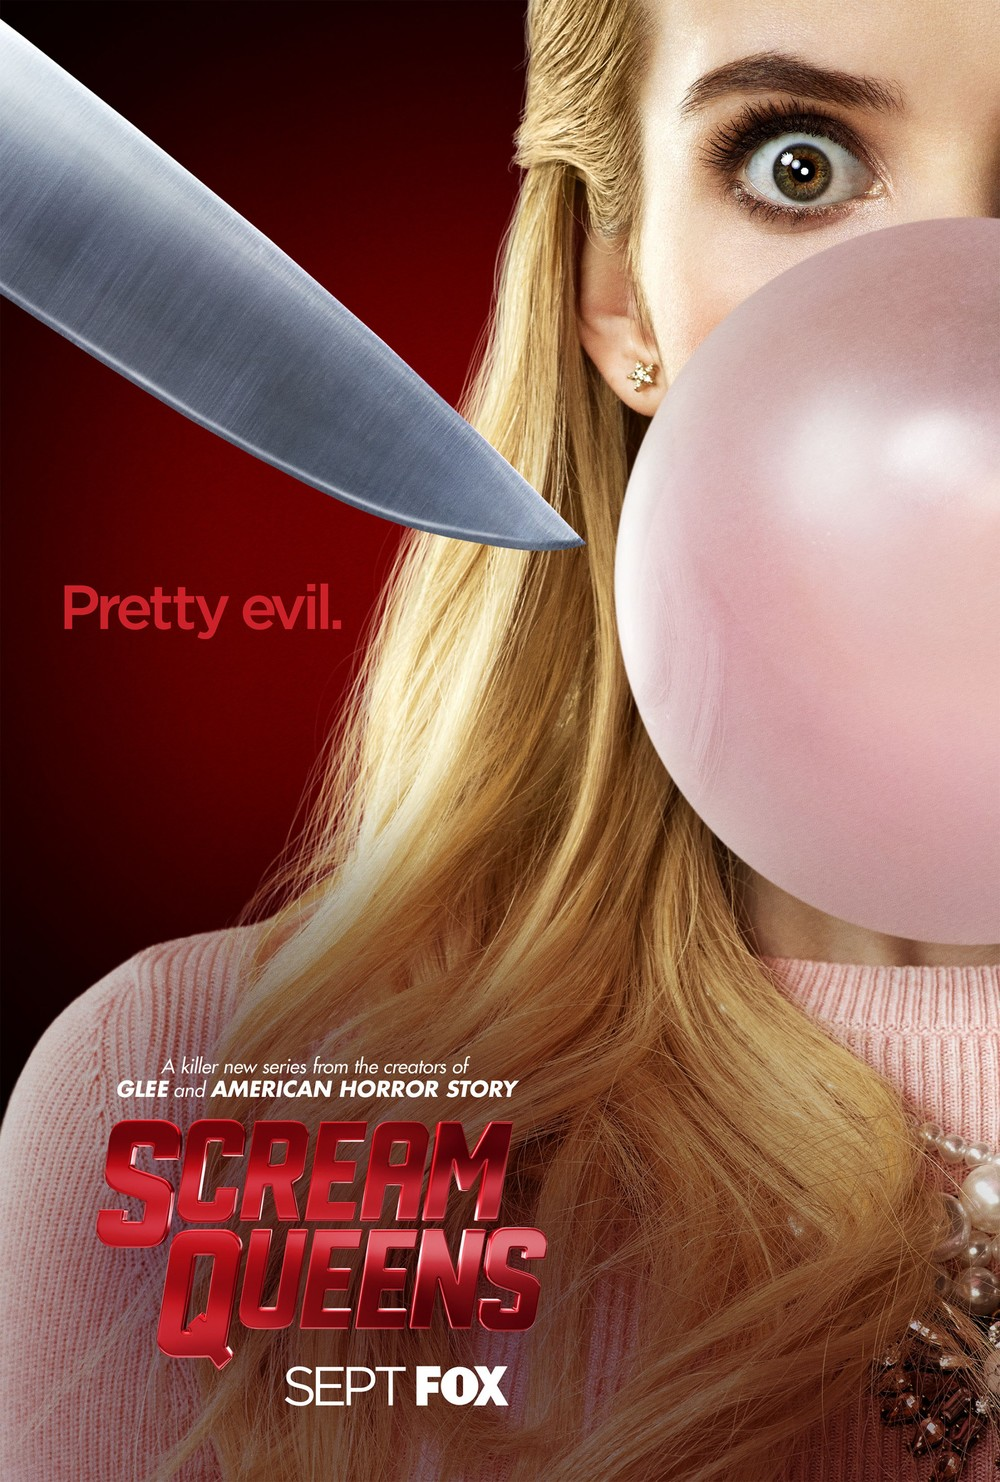 ScreamQueens (2015).jpg